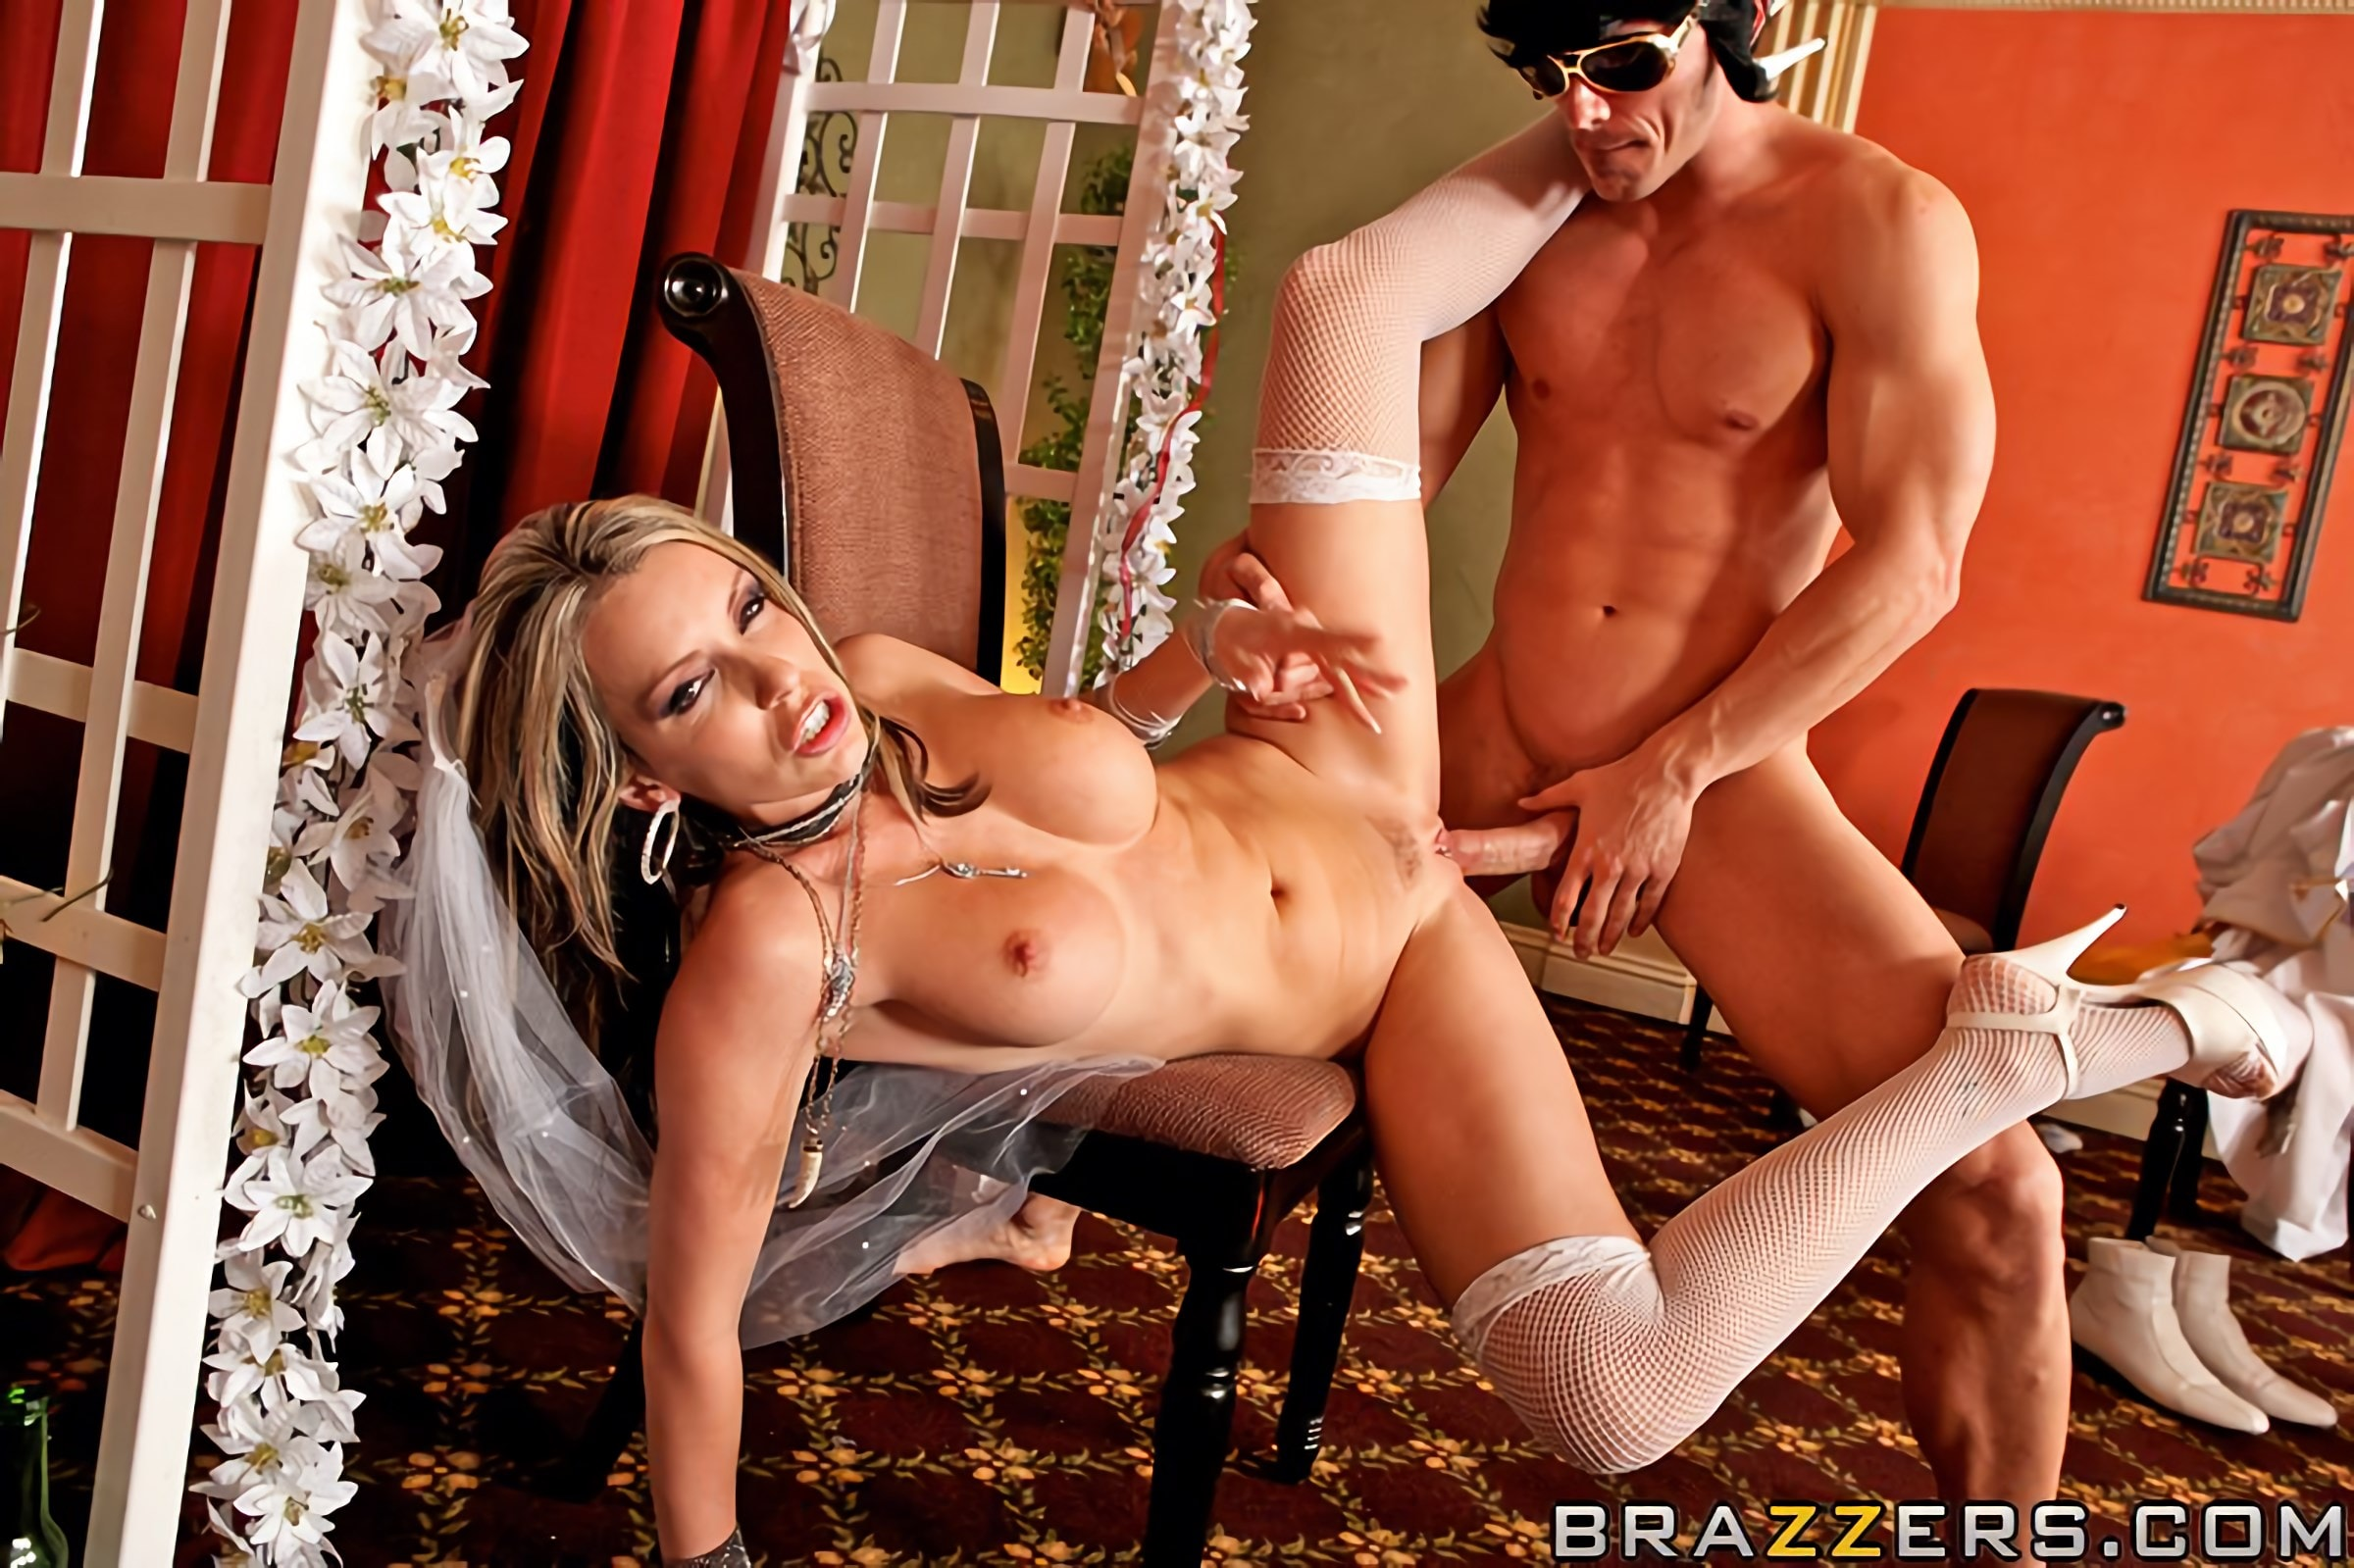 Brazzers 'Fuck Me Tender' starring Courtney Cummz (Photo 11)